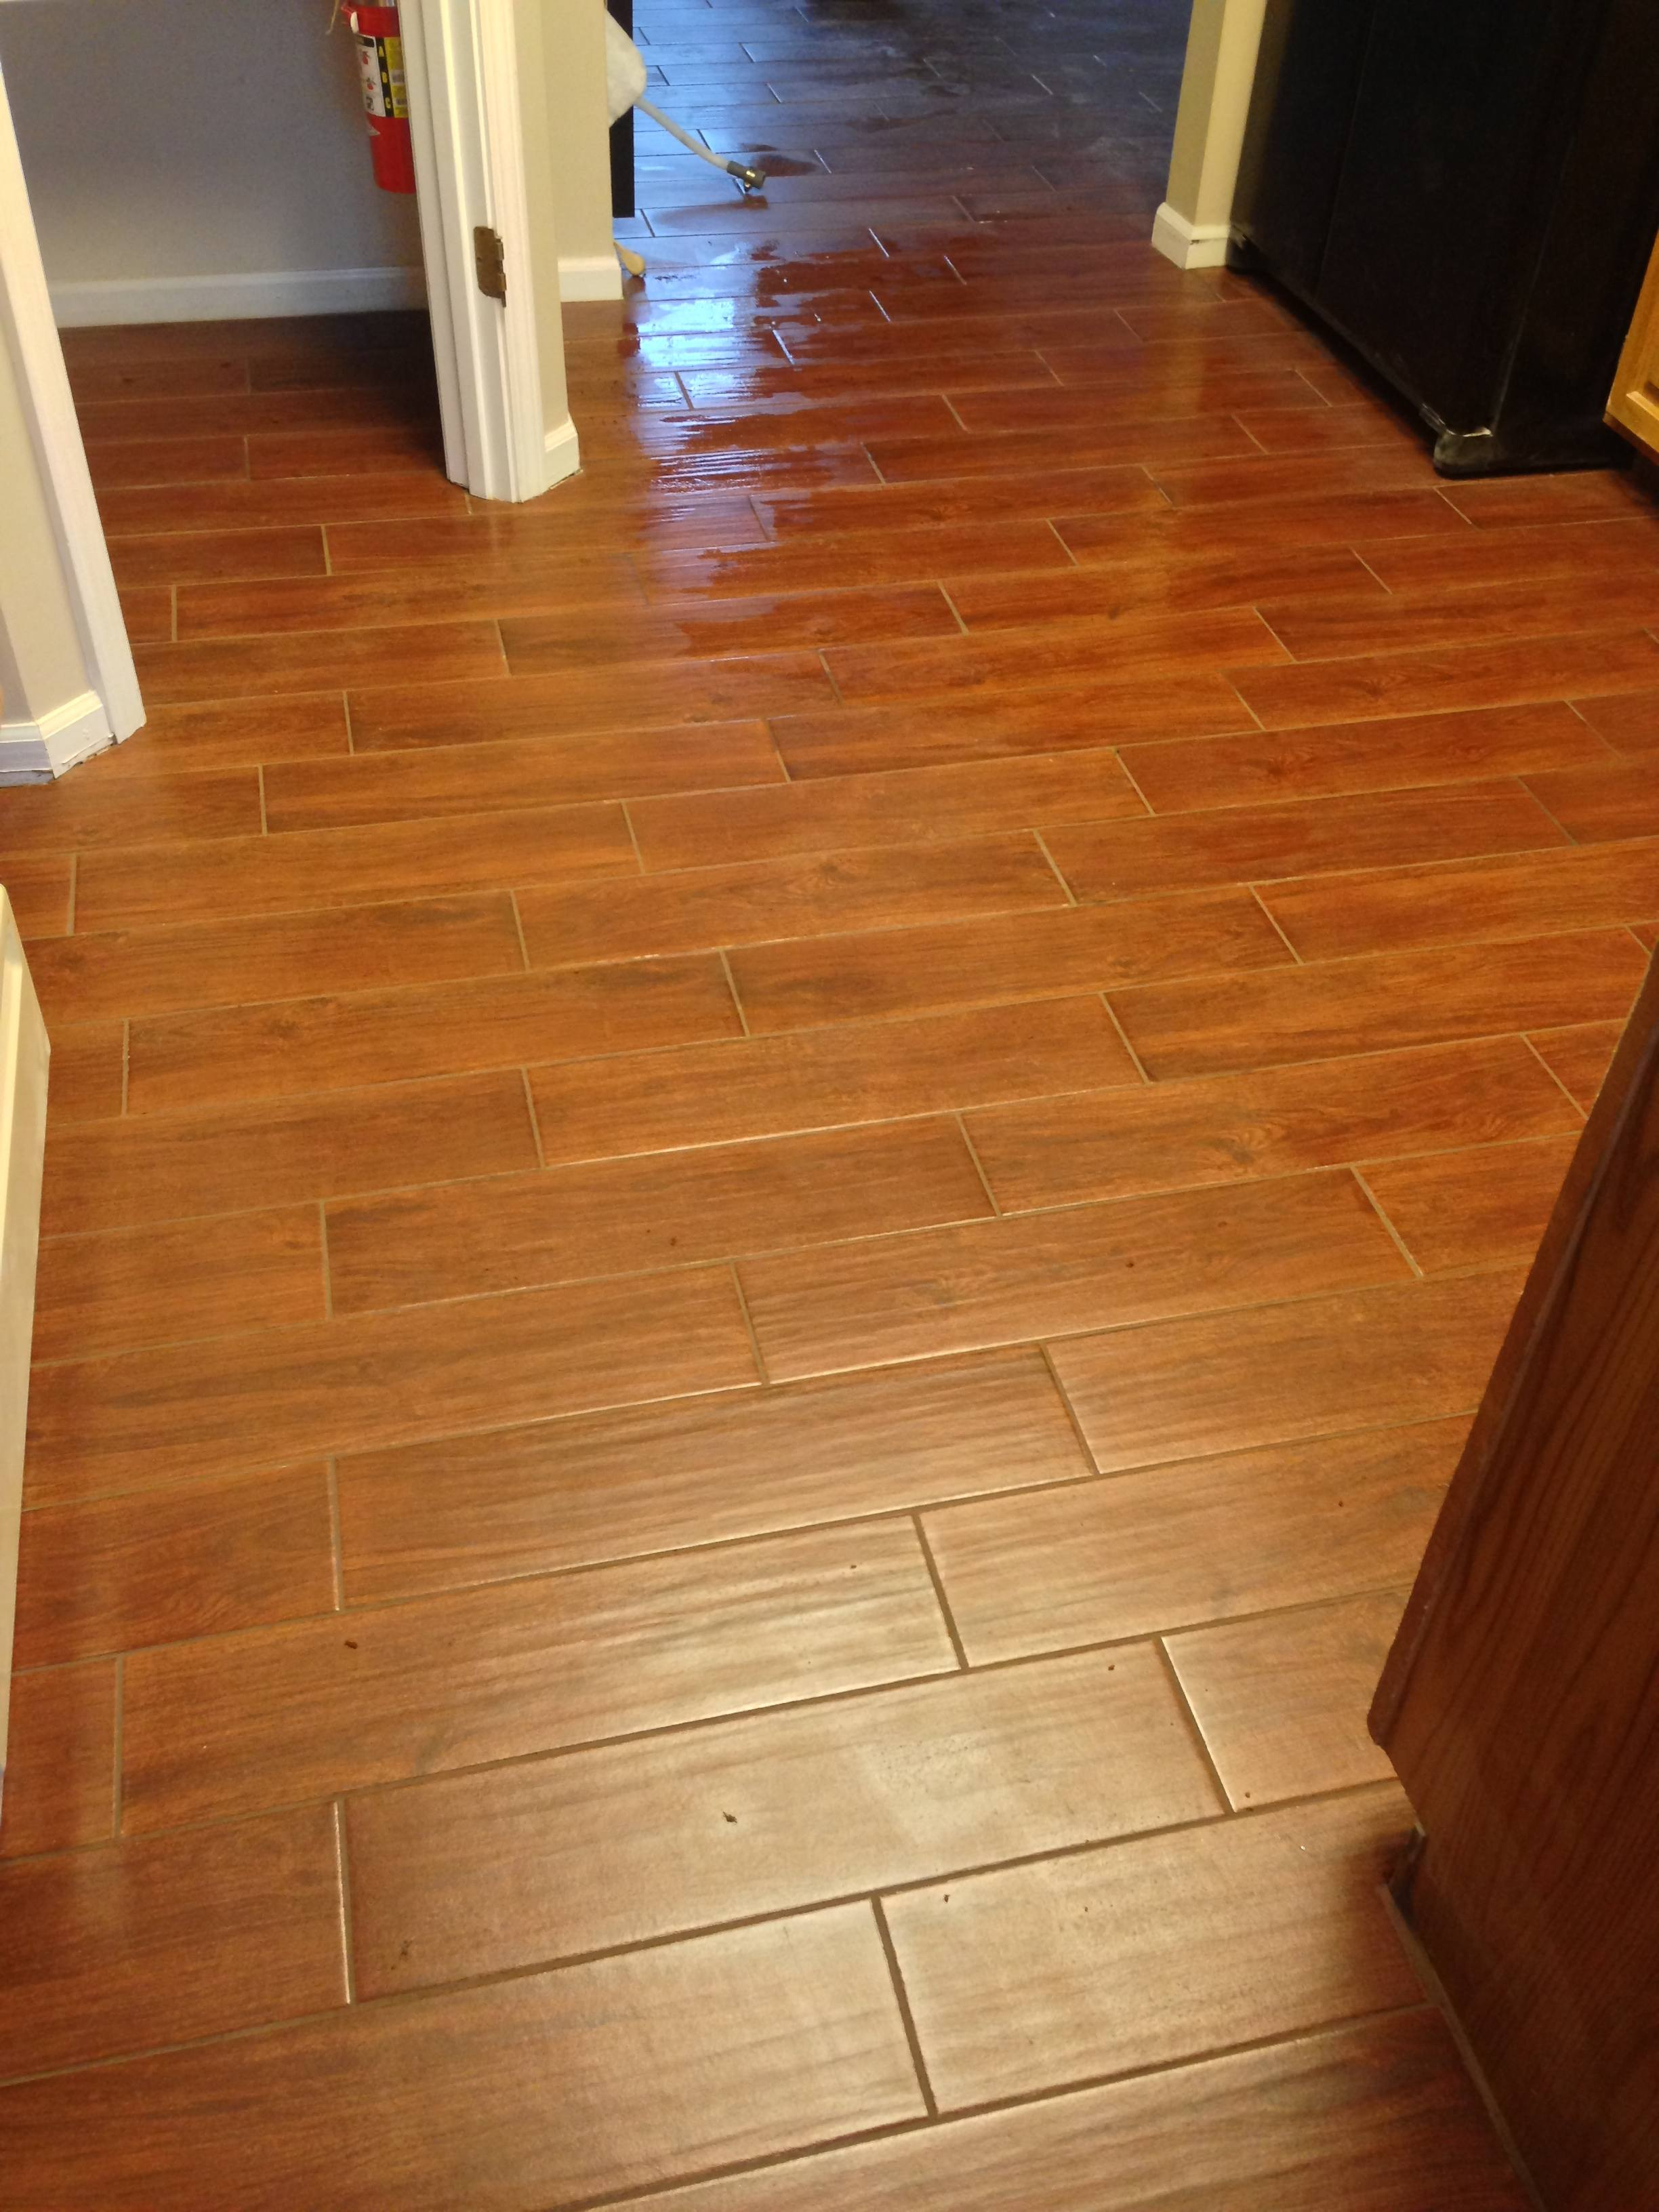 Wood Look Tile In Kitchen